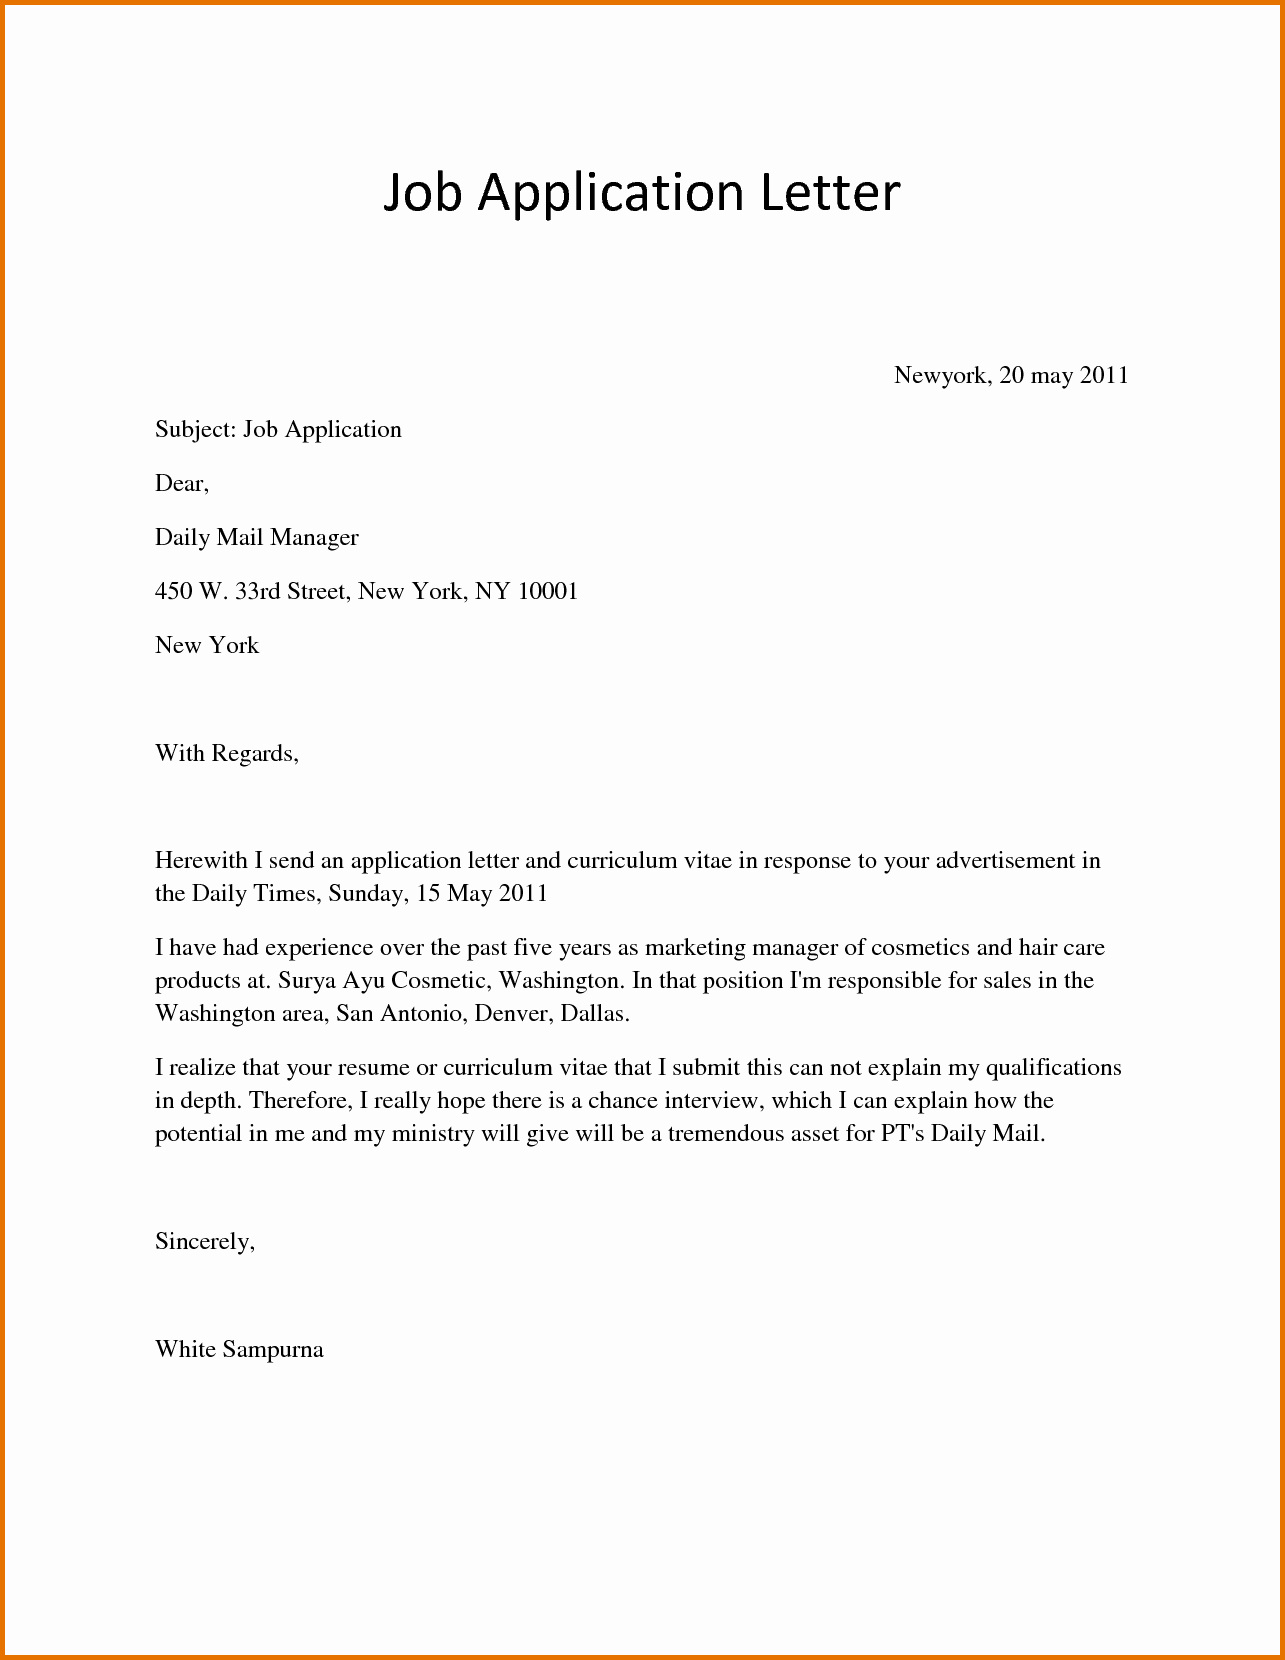 Sample Application Job Letterreference Letters Words